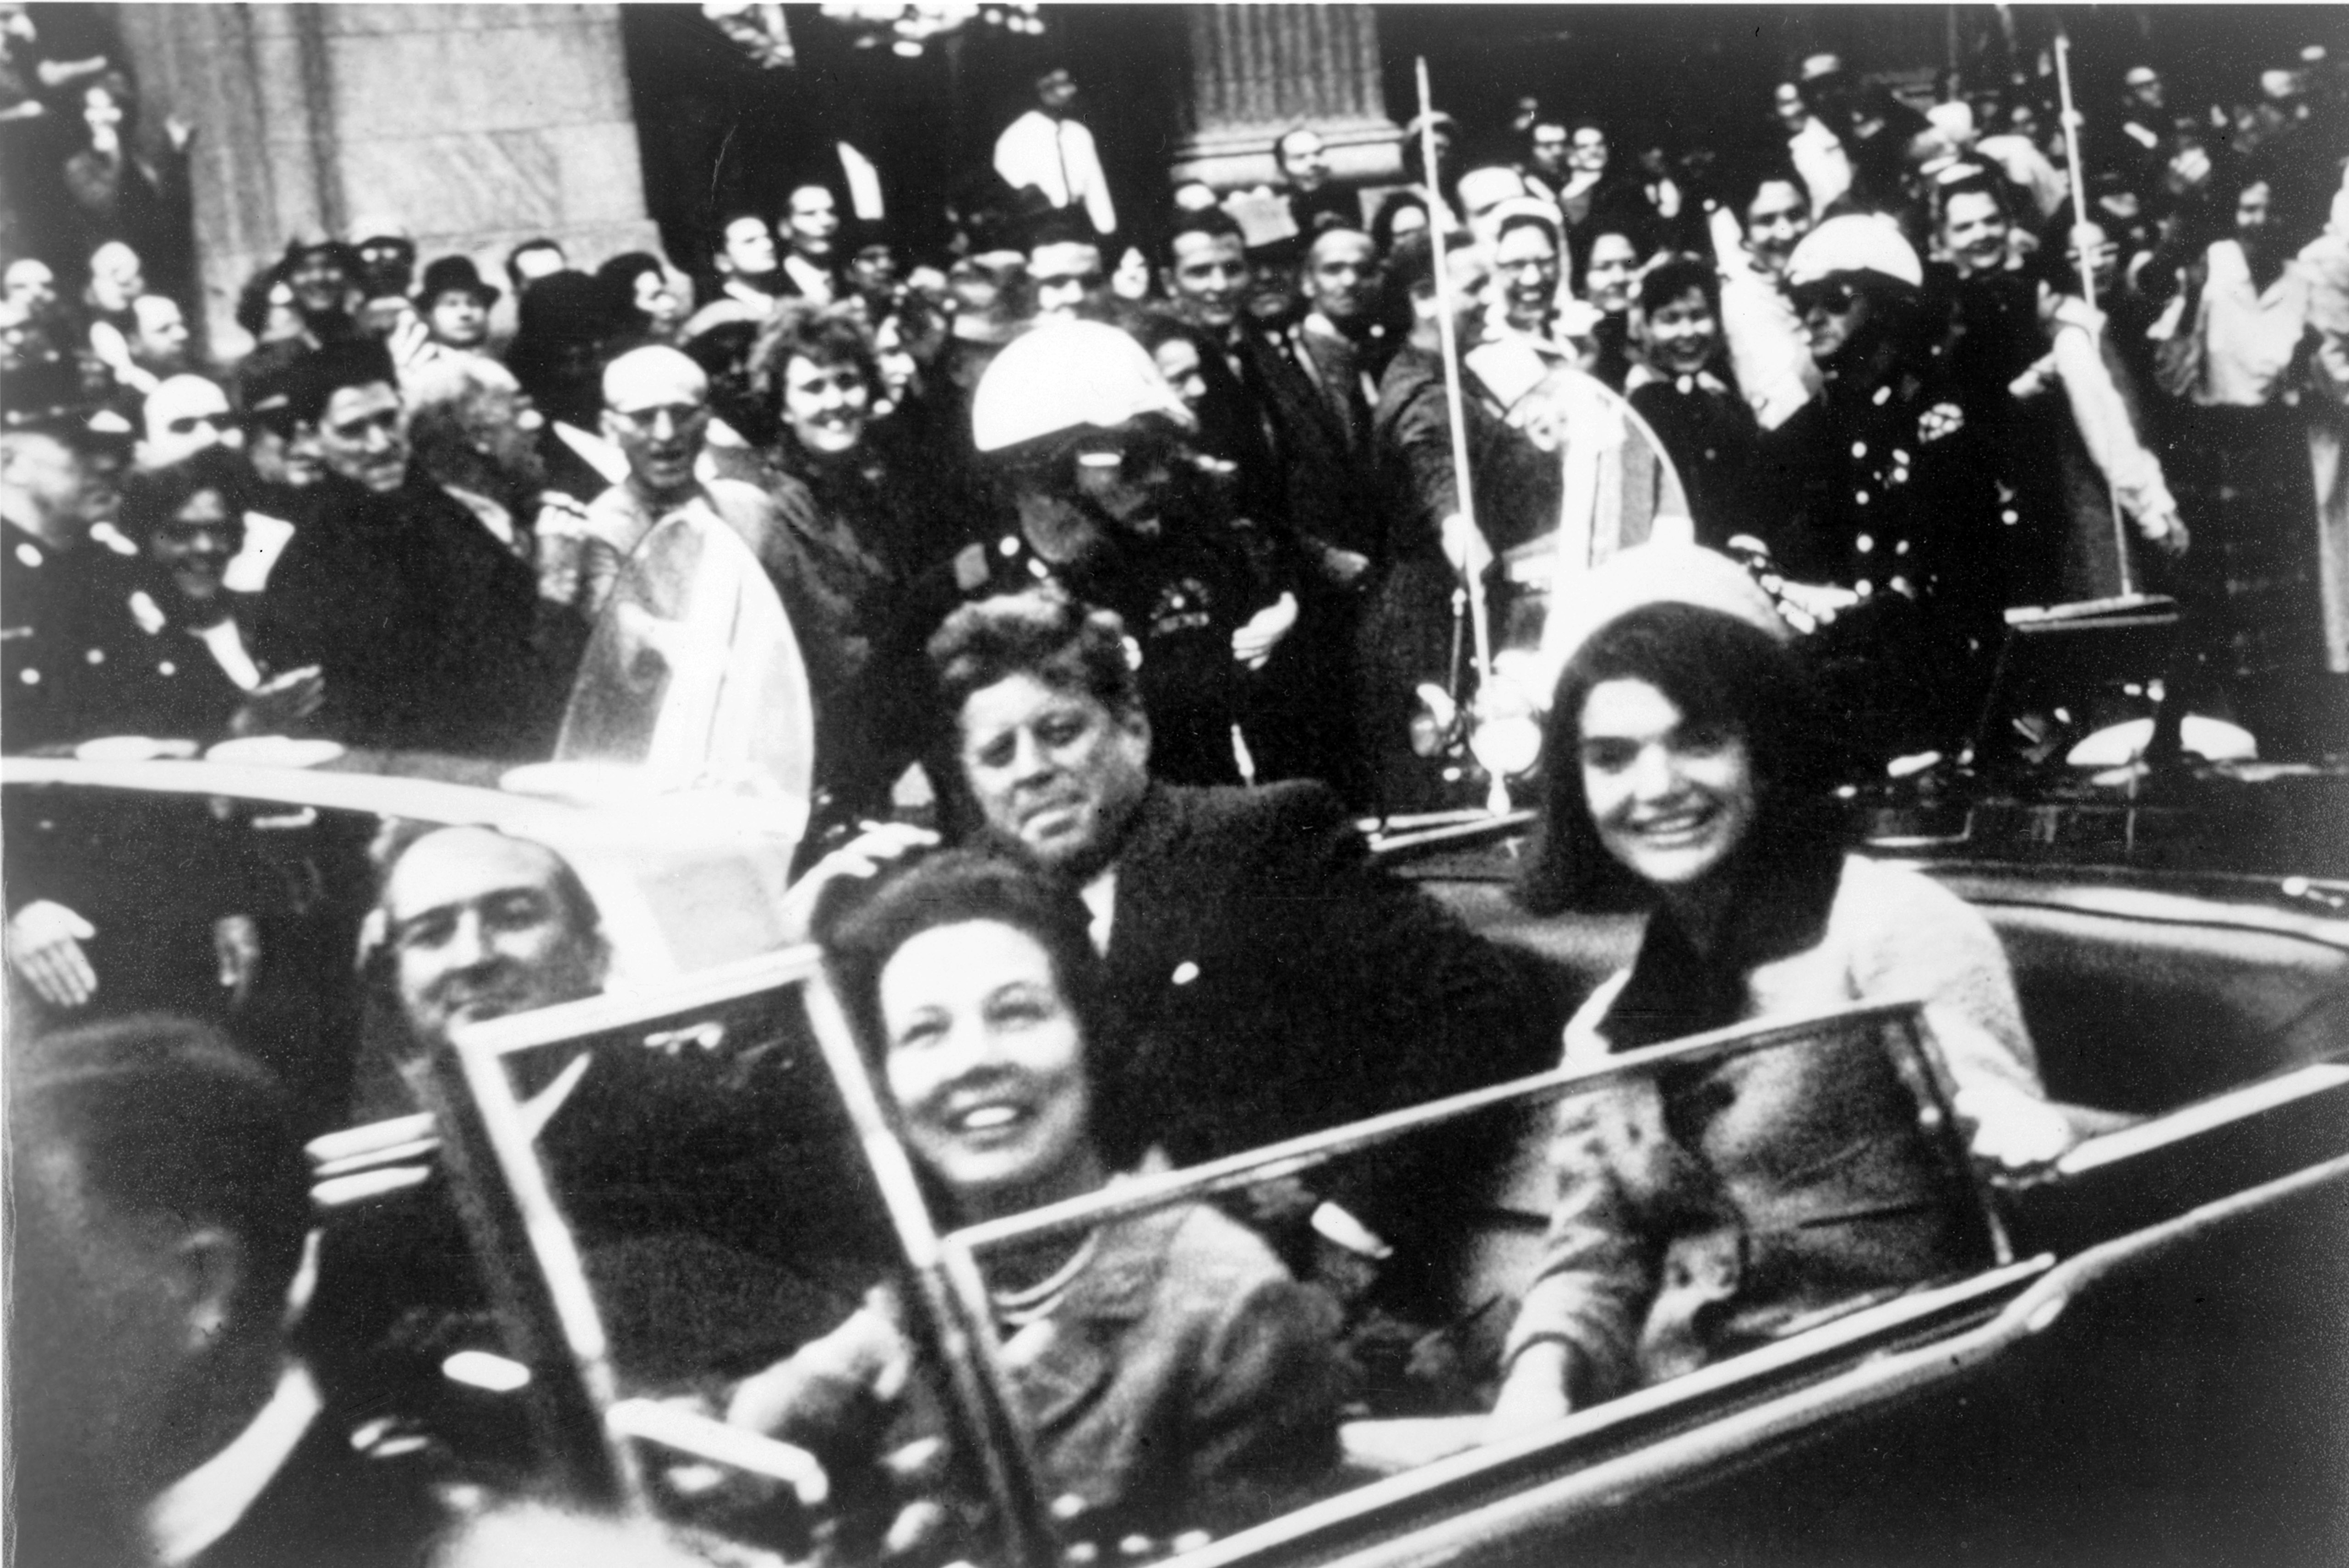 John F Kennedy motorcade, Dallas, Texas USA, 22 November 1963. Close-up view of President and Mrs Kennedy and Texas Governor John Connally and his wife. (photo credit: Universal History Archive/Getty Images)